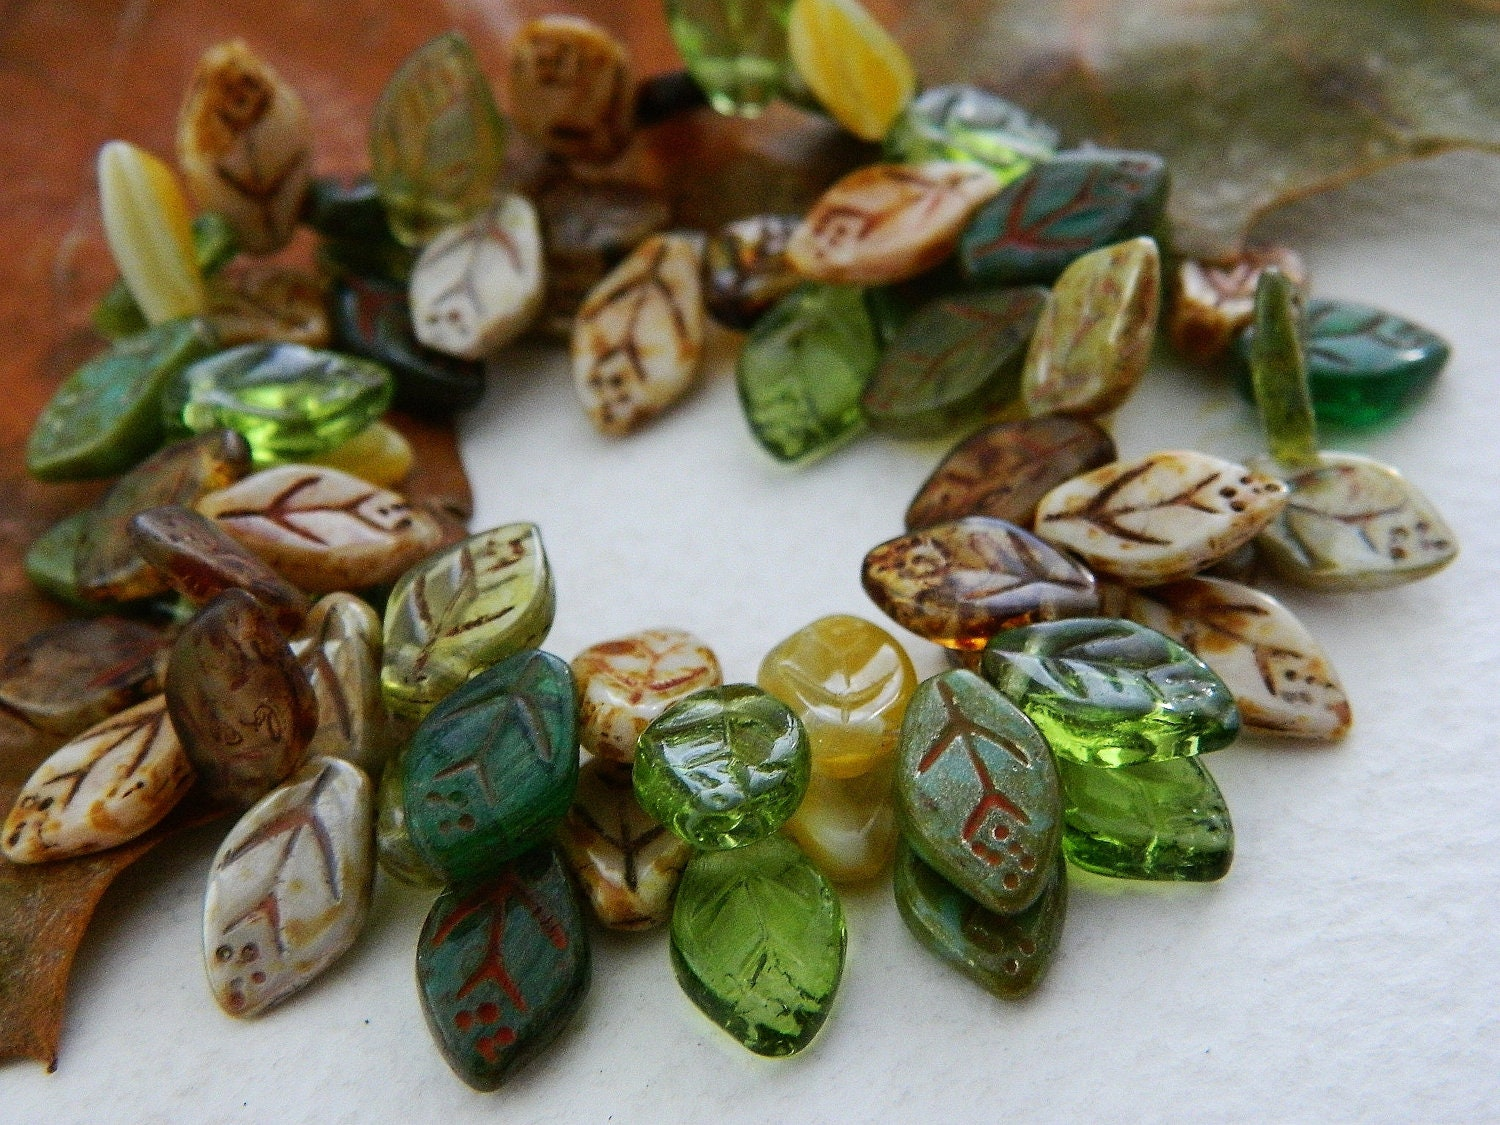 Leaf Beads Czech Glass Beads Brown Green & Olive Mix 12X7mm (36pcs) - yashmacreations